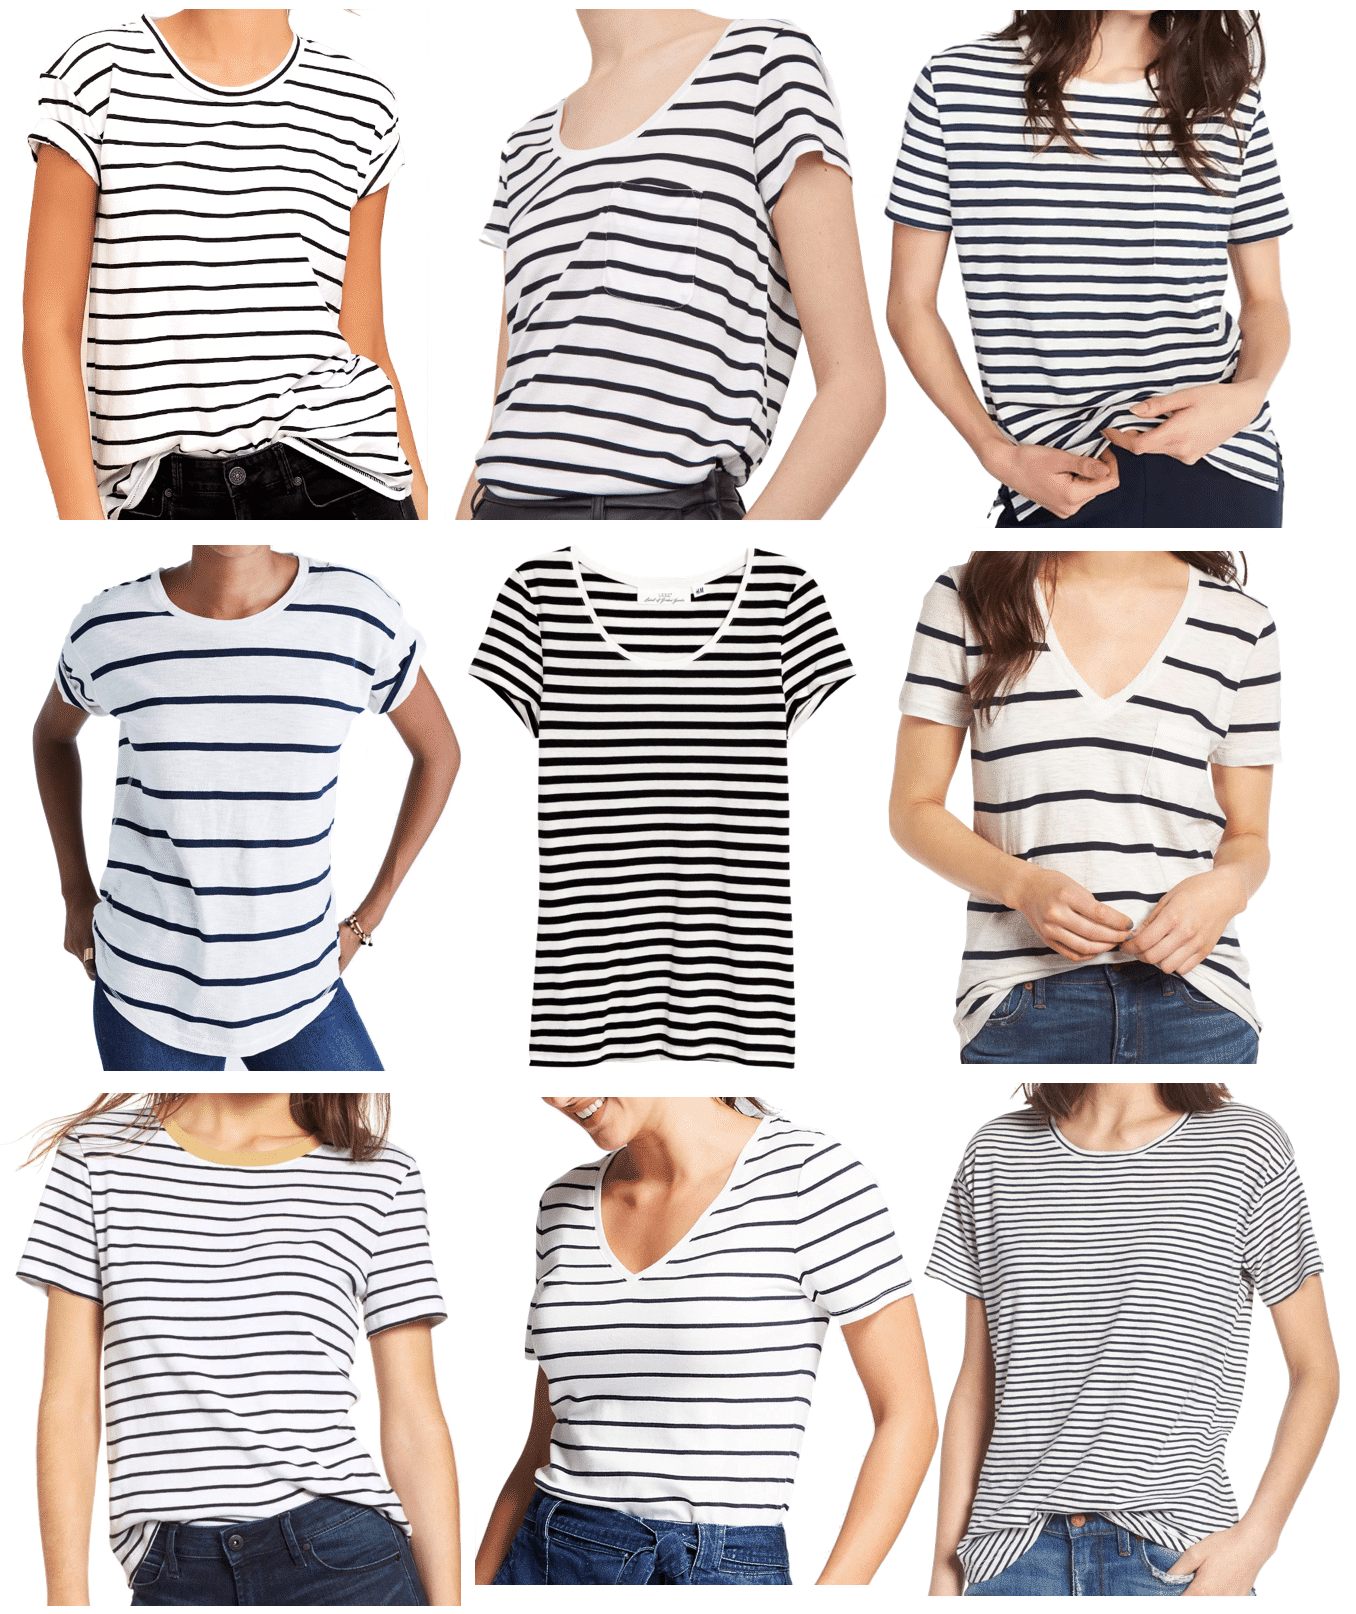 9 Affordable Short Sleeved Striped Tees